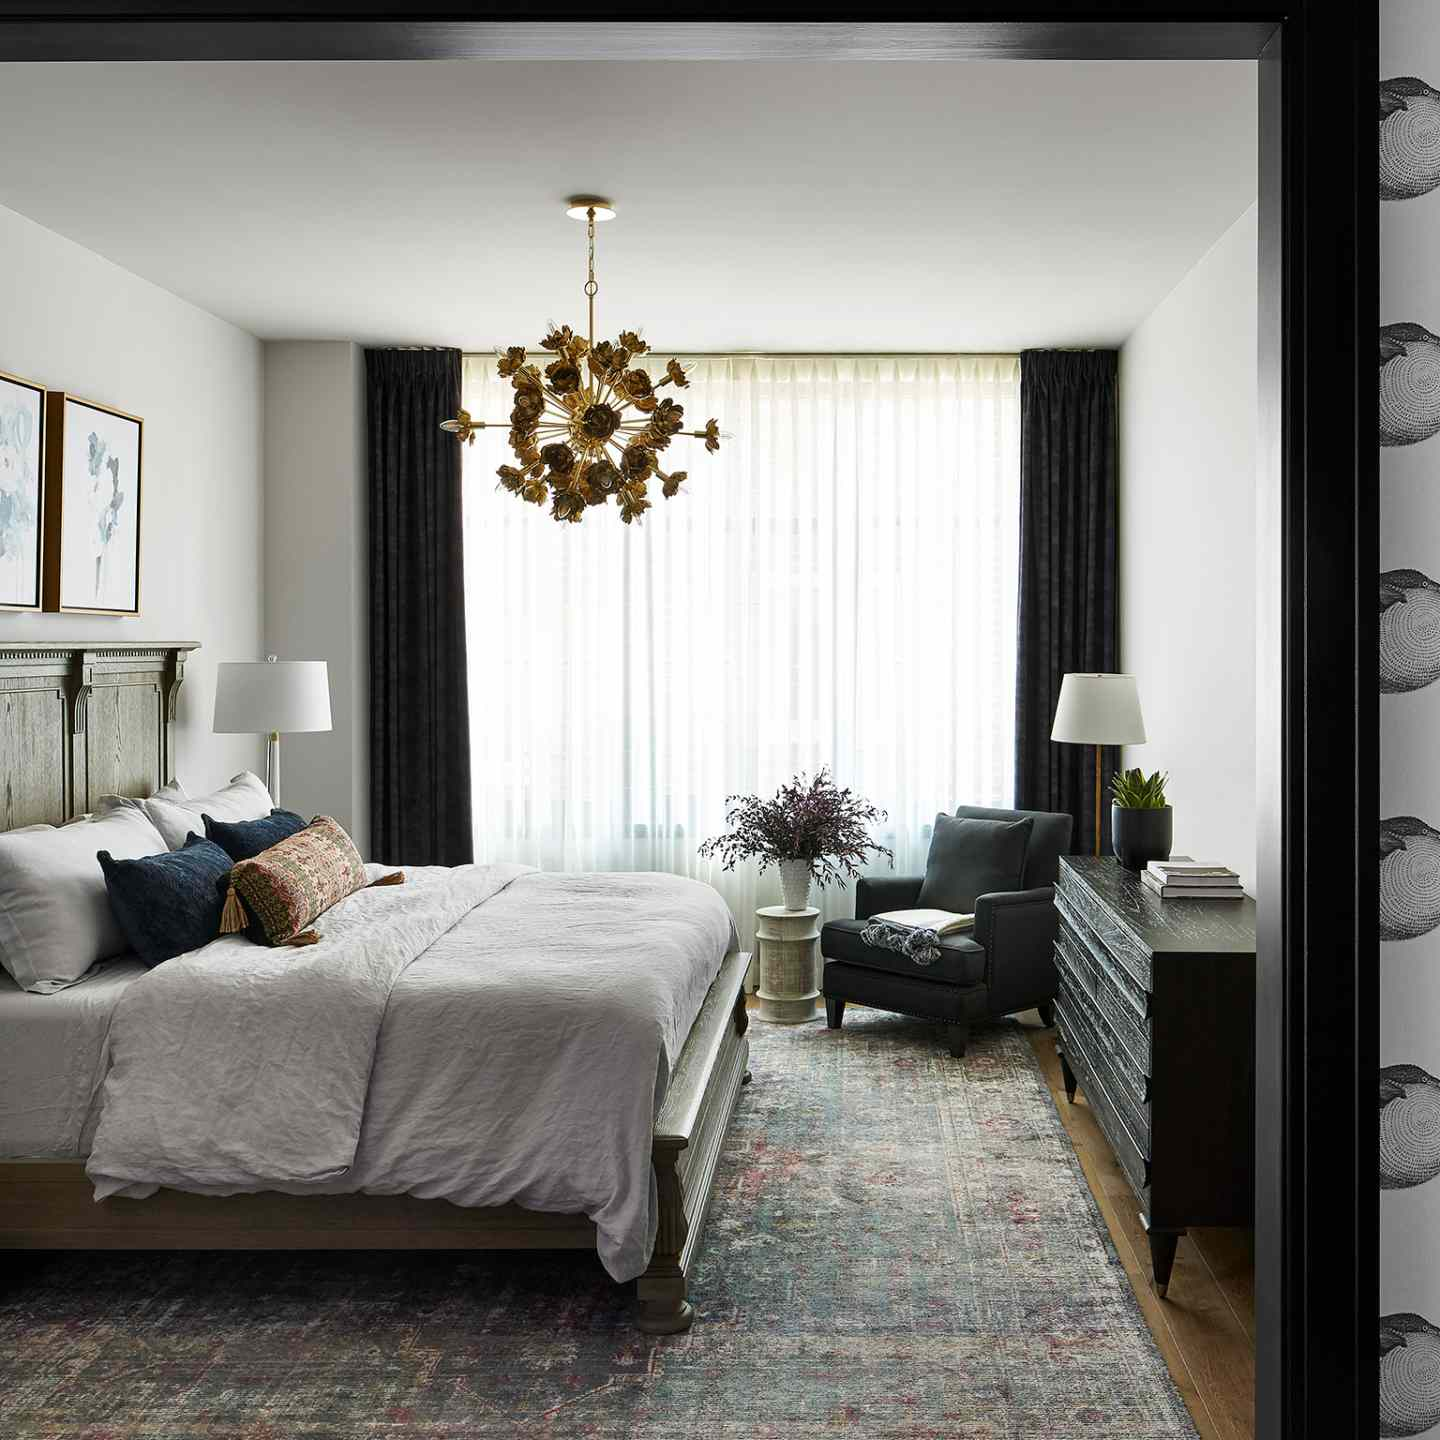 Chic upscale bedroom with pale gray walls